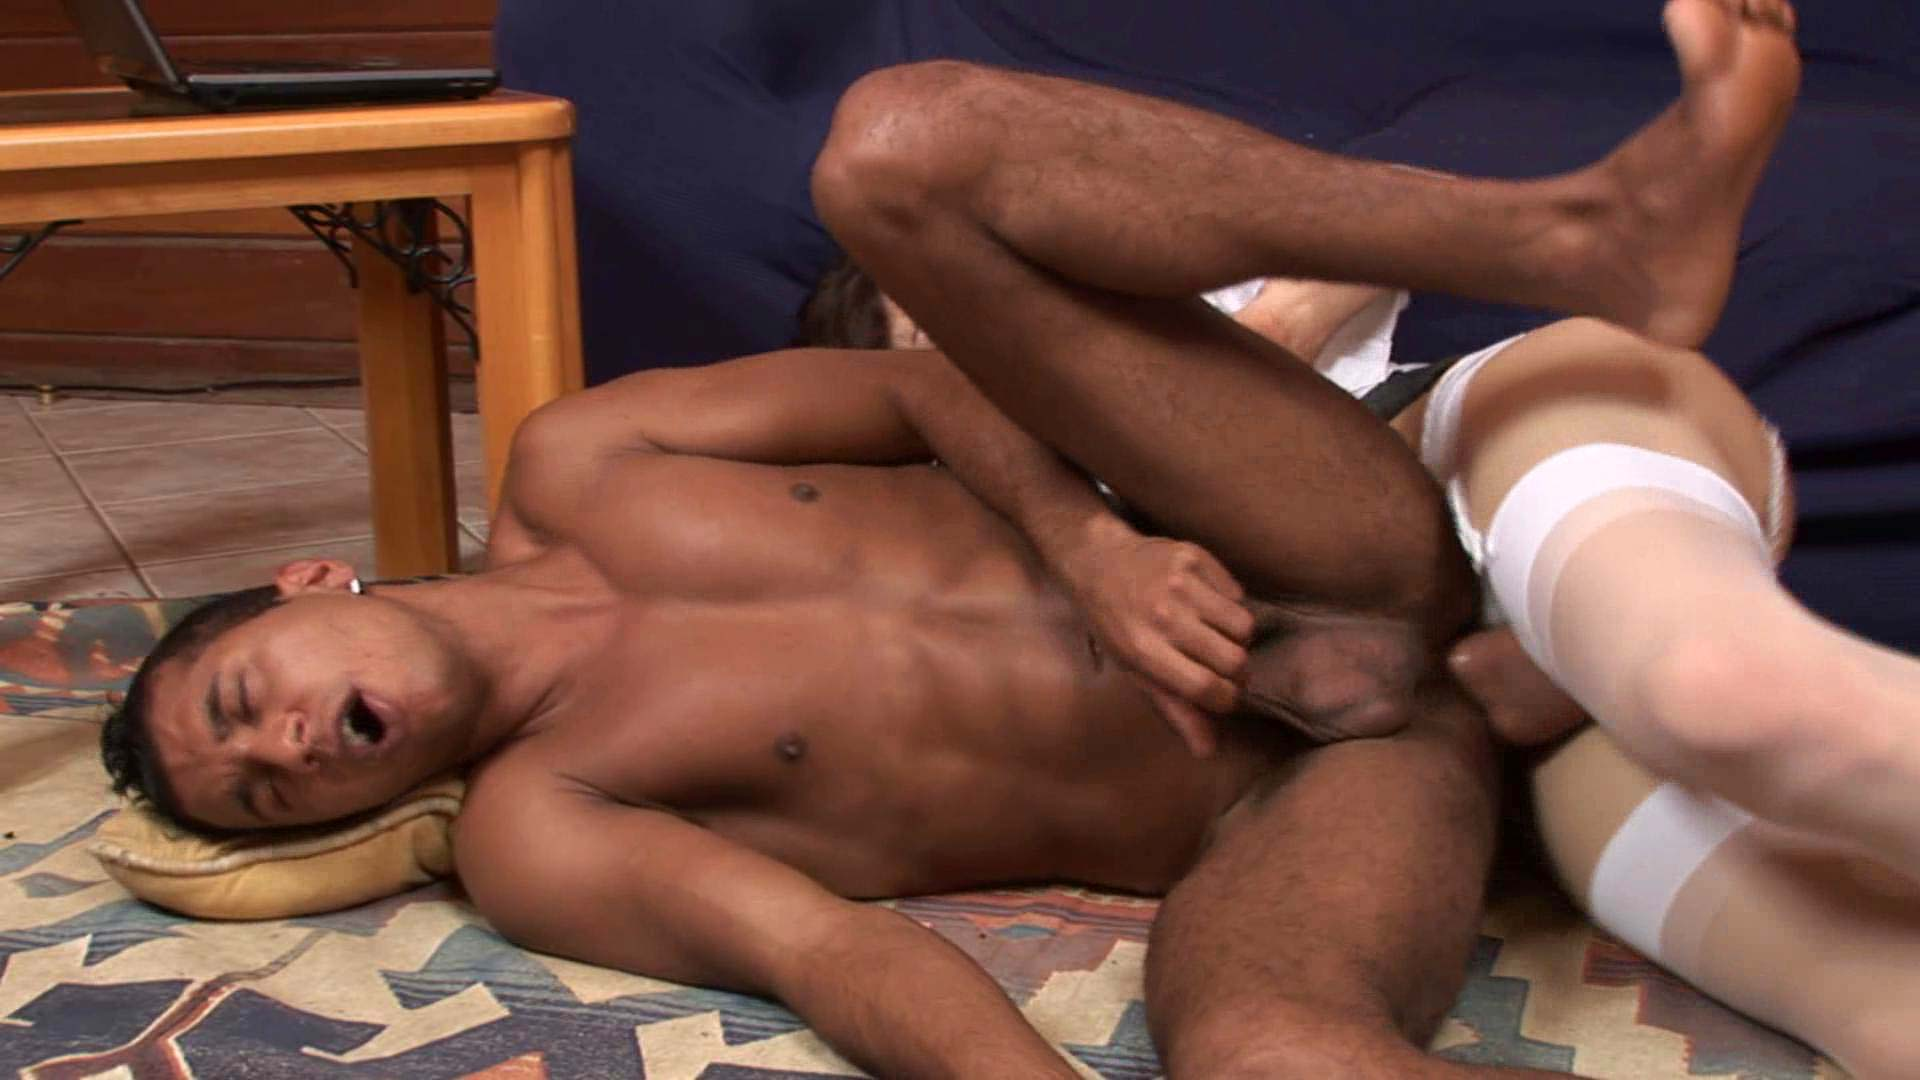 Adriana and Junior tranny fucking dude on